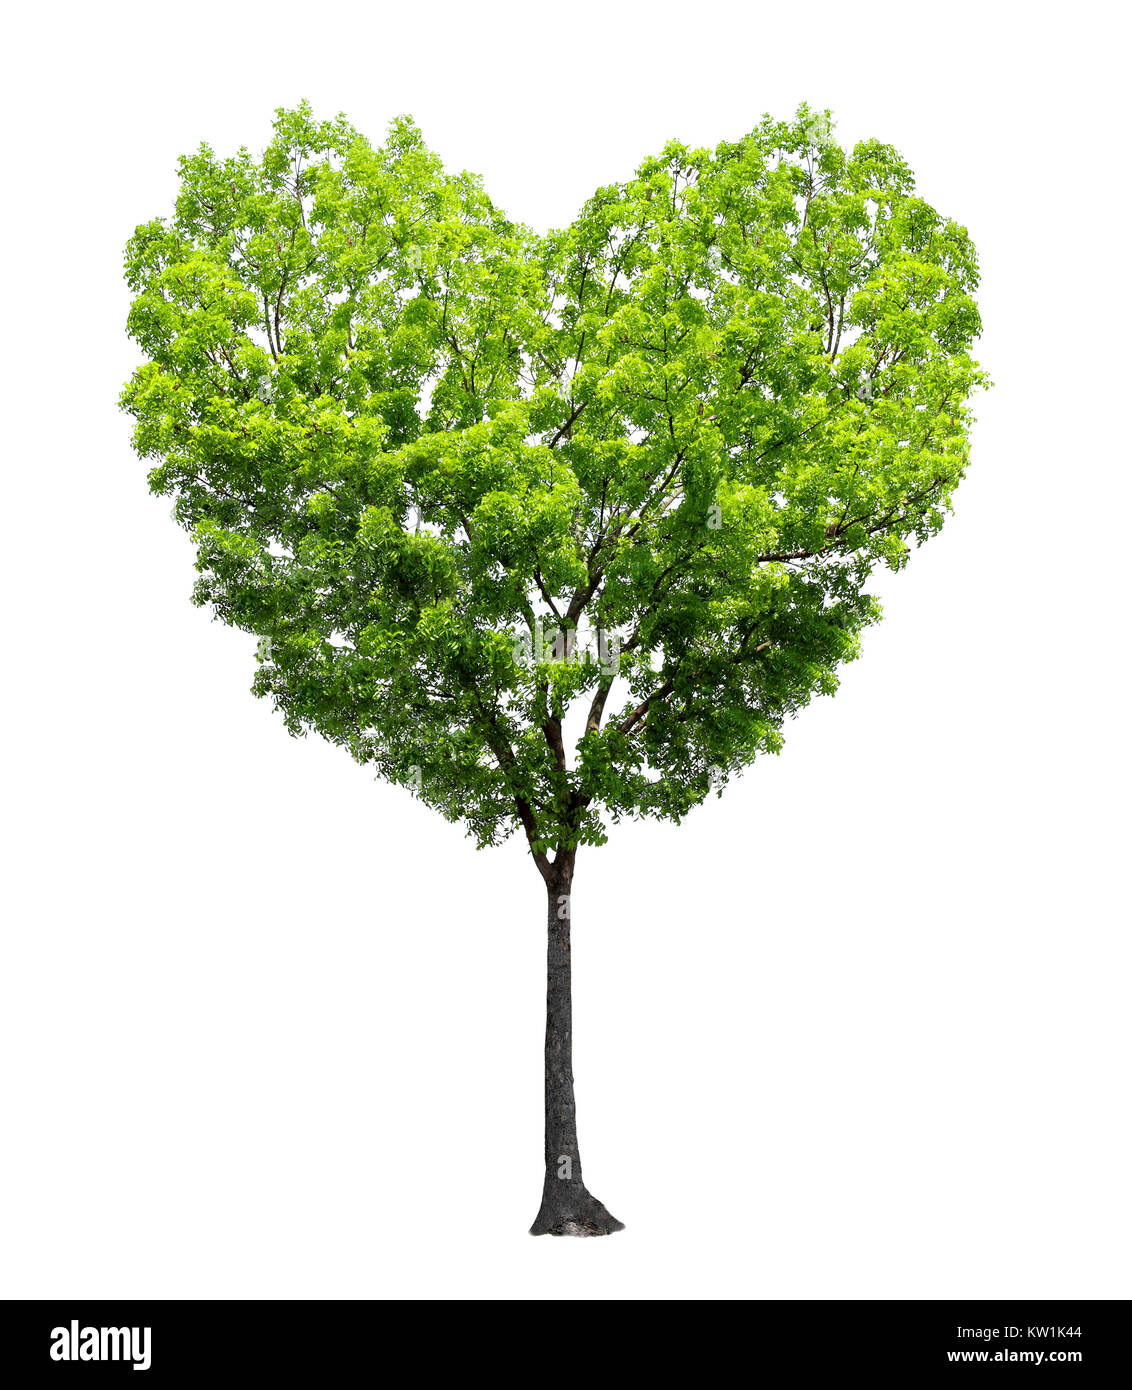 Heart shape tree - Stock Image